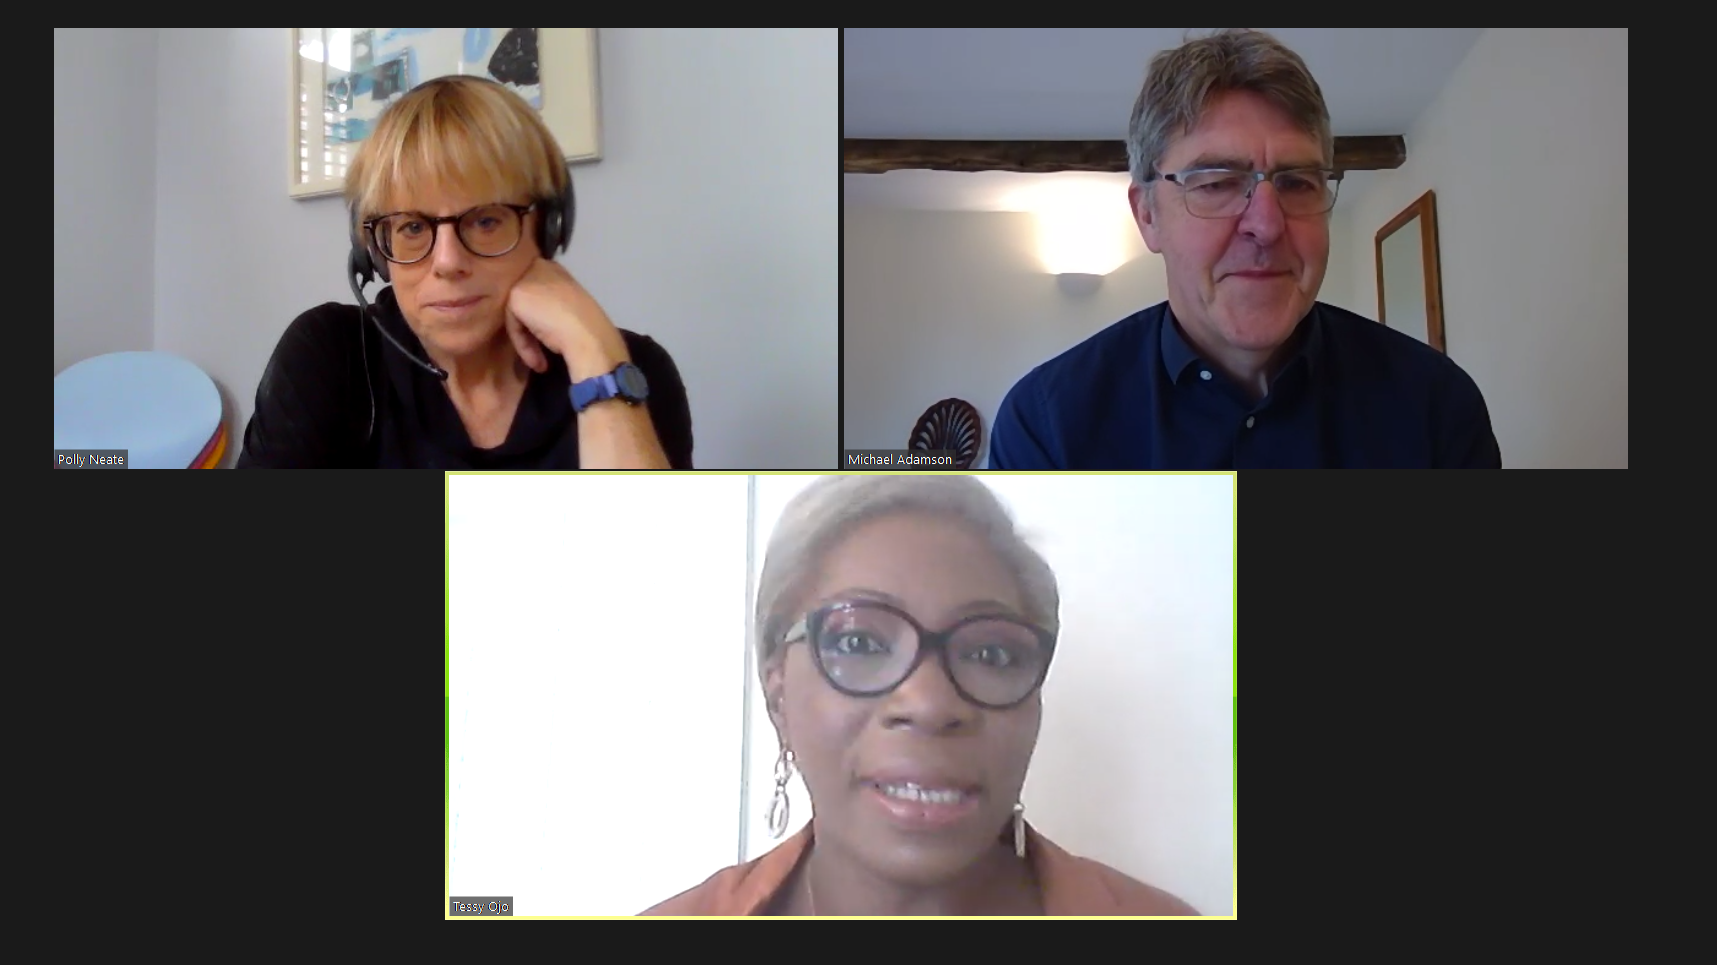 screenshot of Tessy Ojo, Polly Neate and Michael Adamson in a Zoom meeting